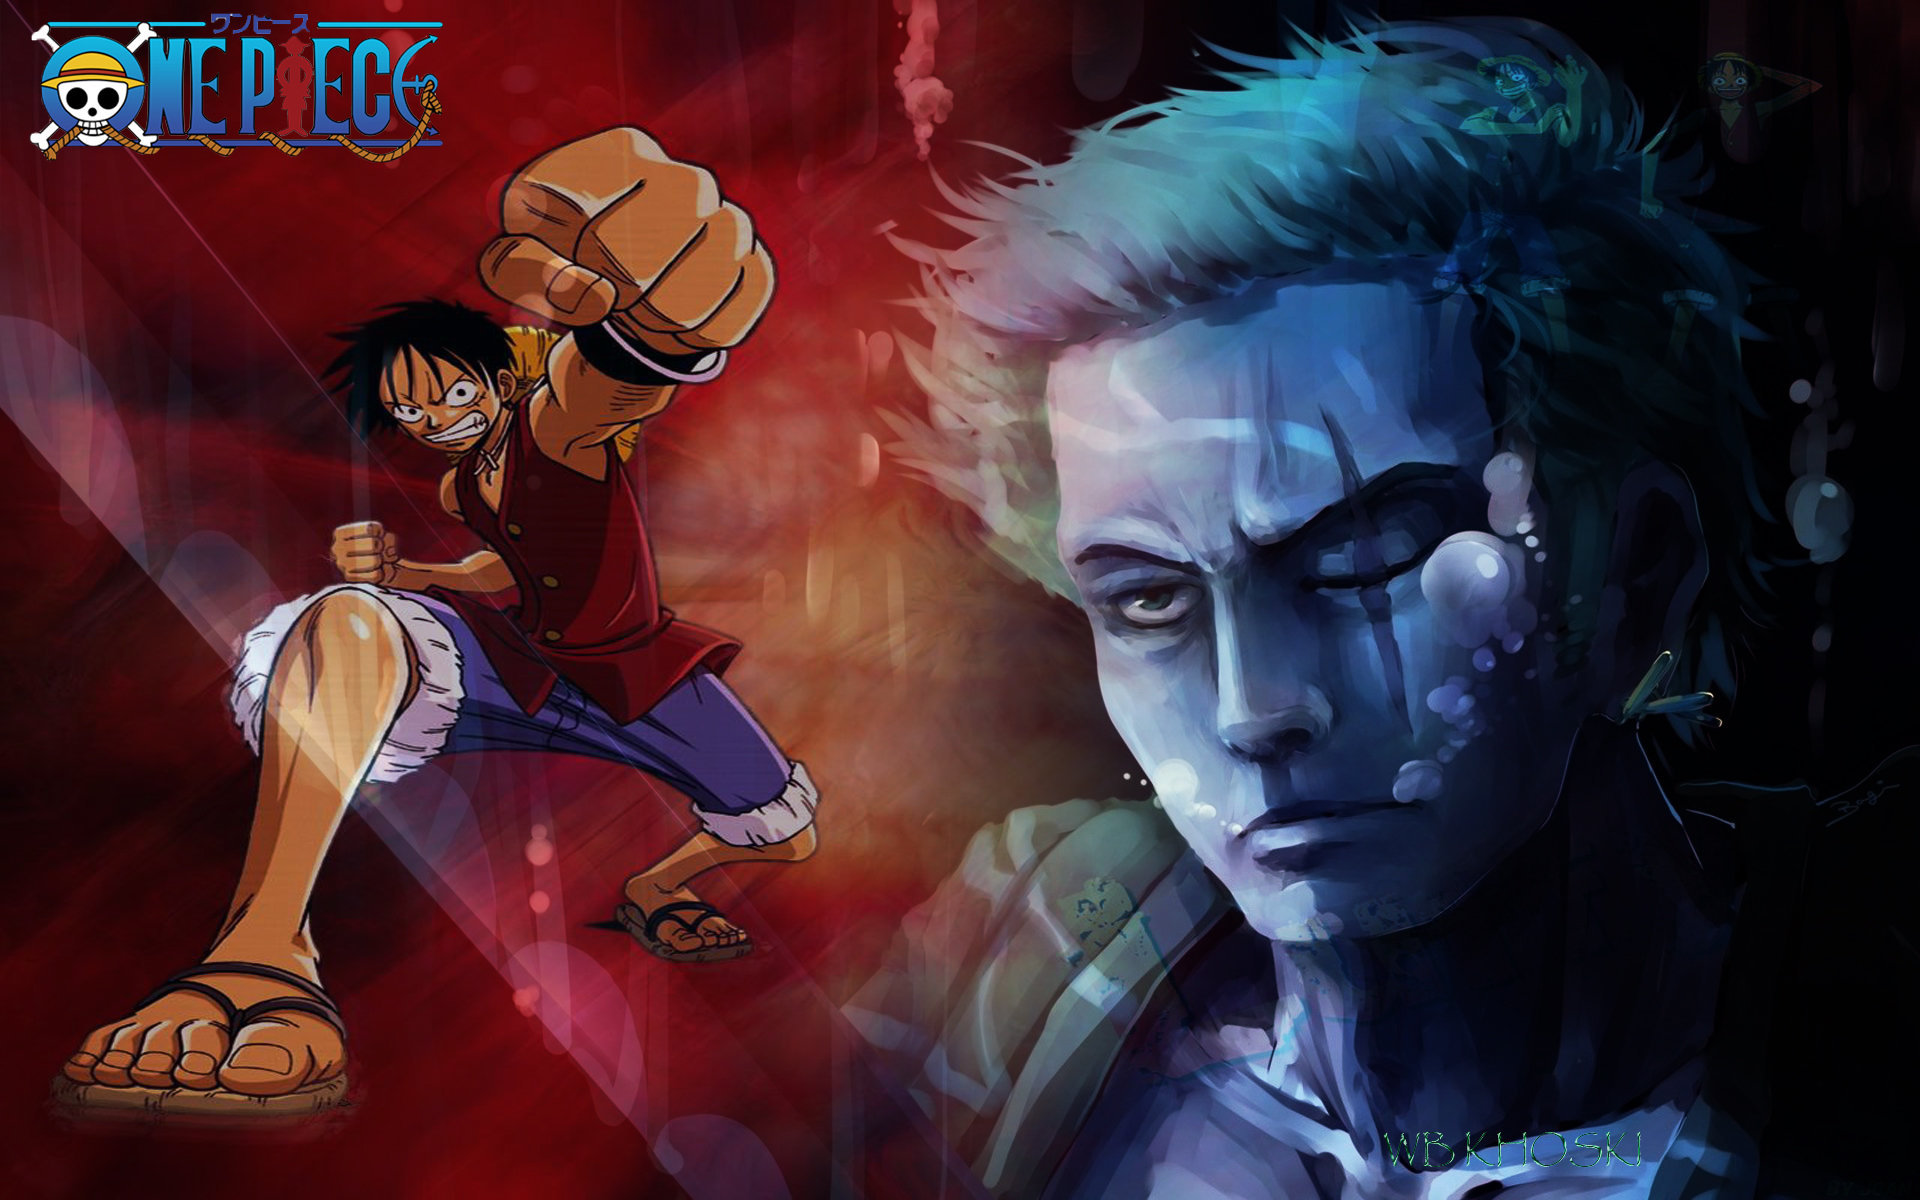 Download hd 1920x1200 One Piece desktop background ID:314215 for free